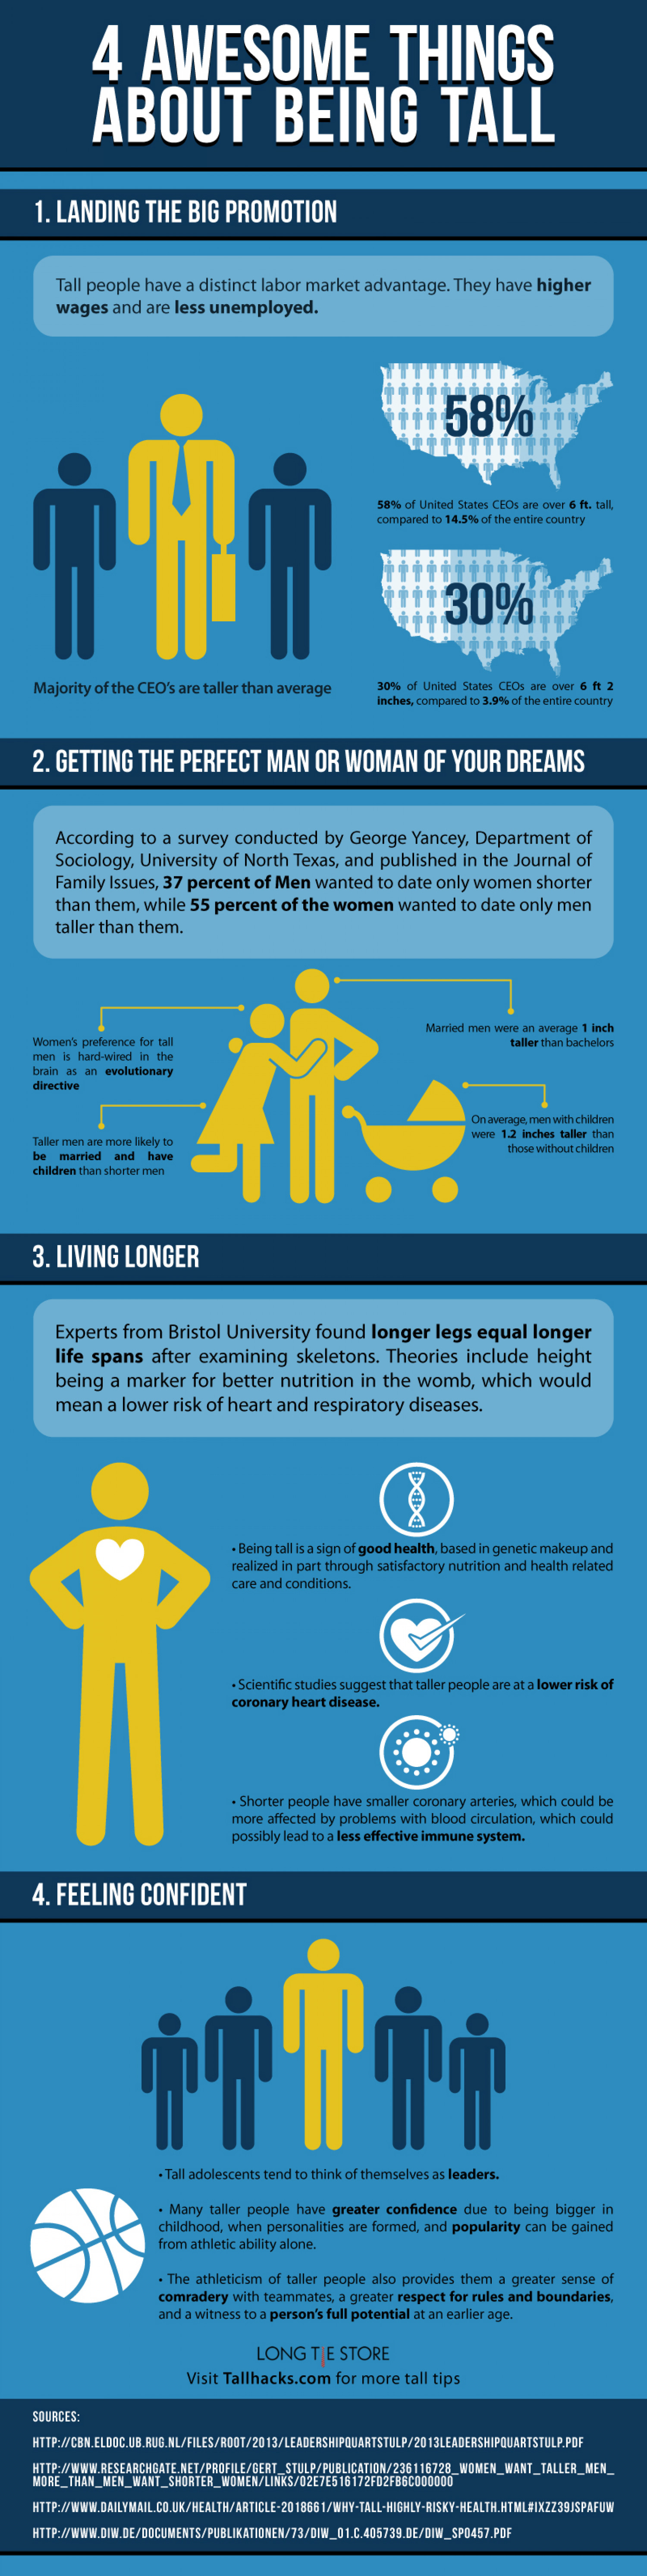 4 Awesome Things About Being Tall Infographic